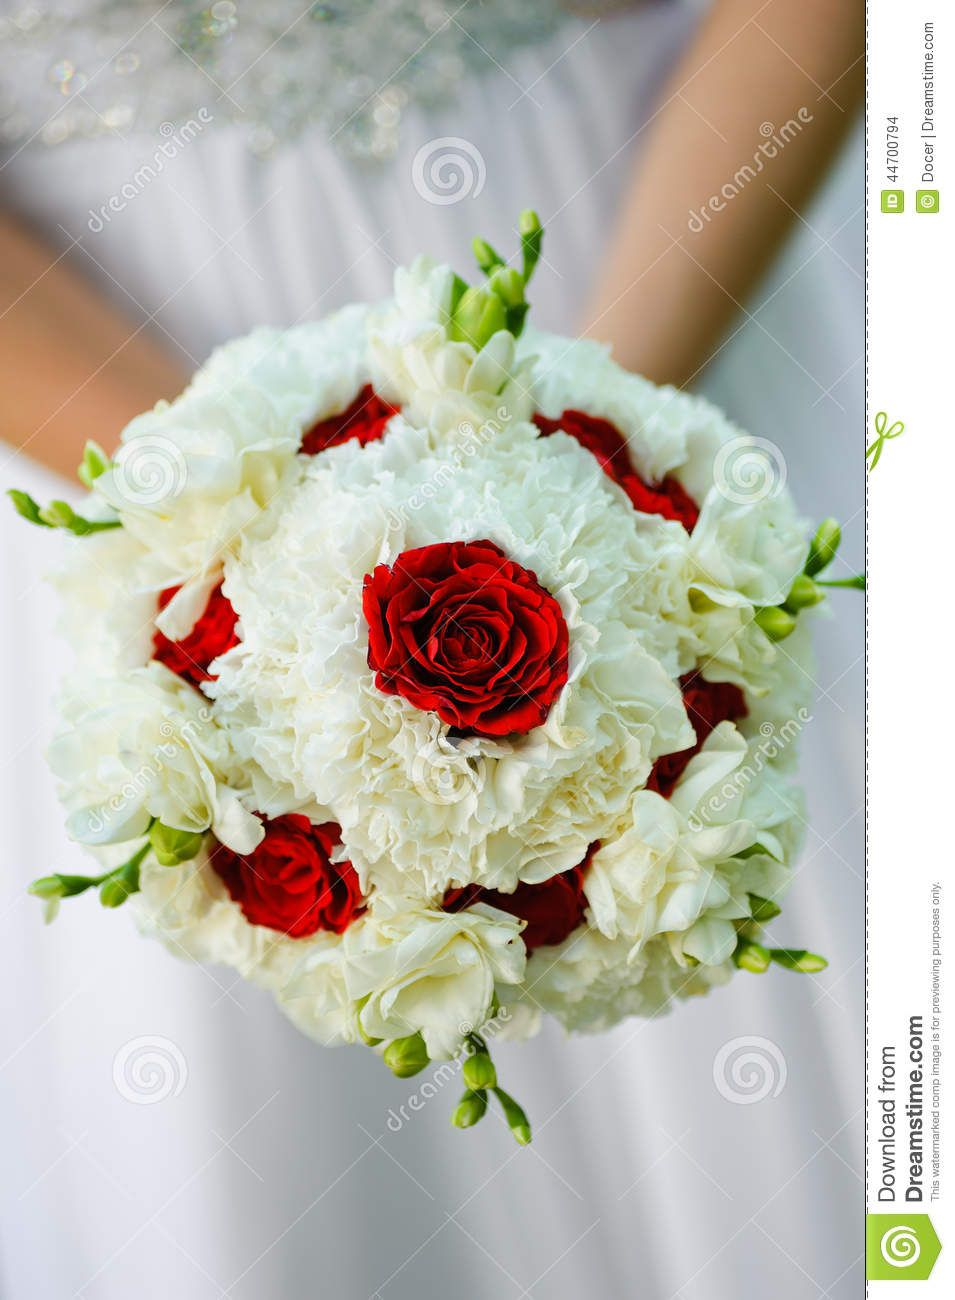 Beauty Wedding Bouquet Of Red Roses And White Flowers